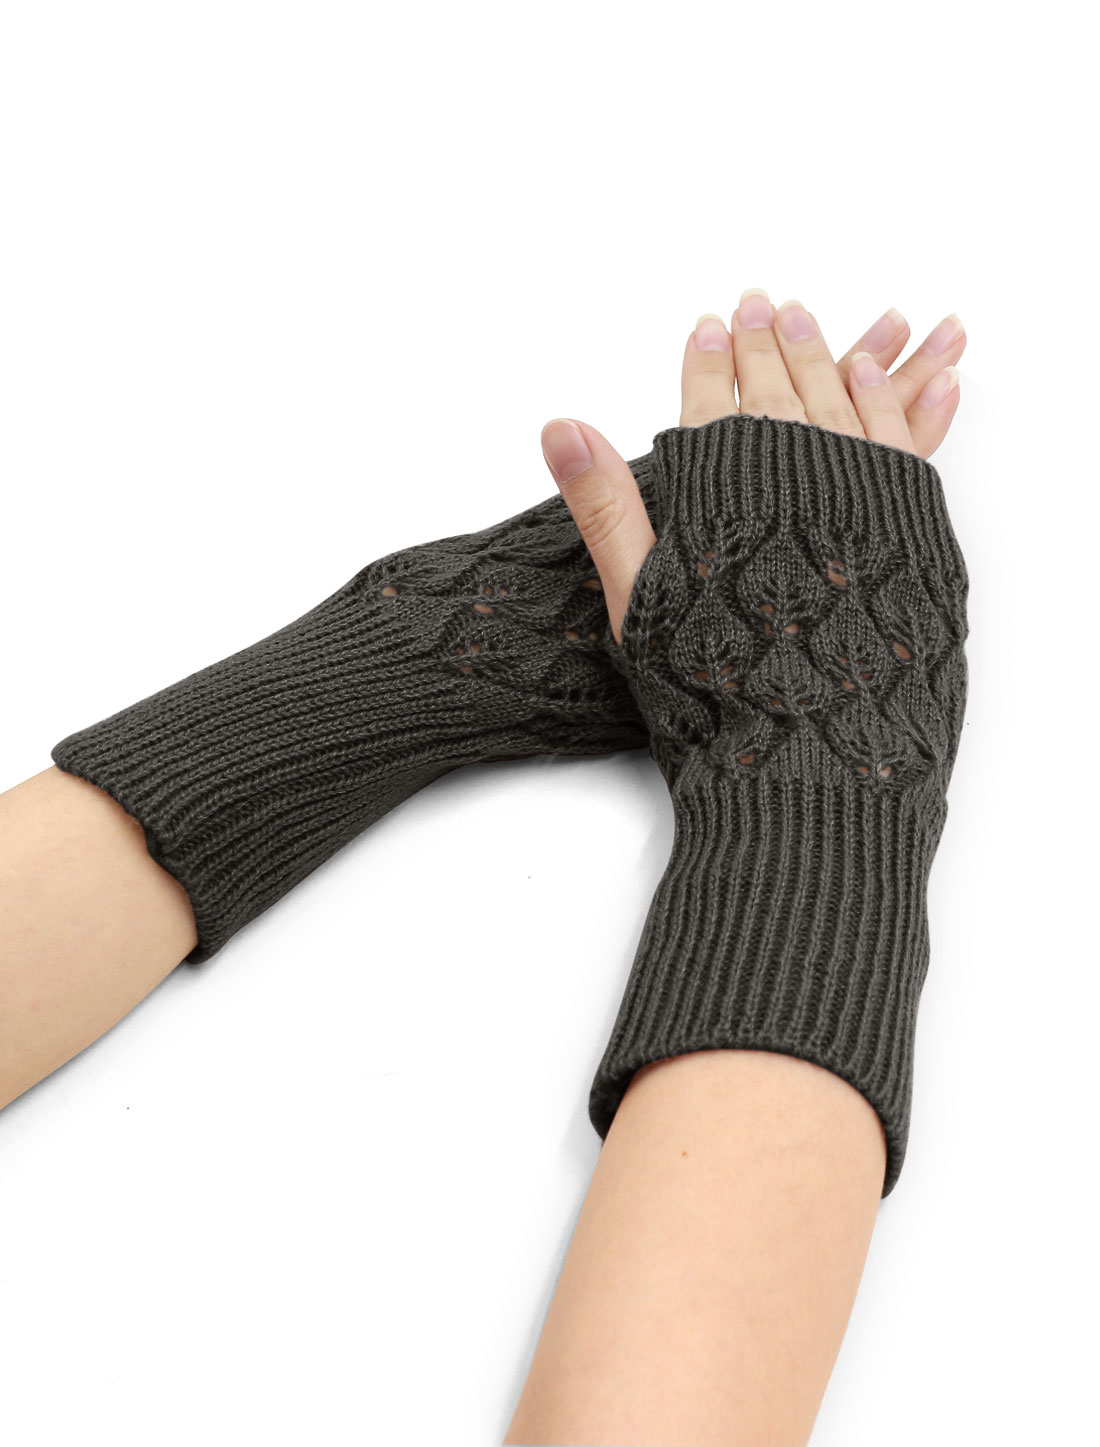 Women Wrist Length Leaves Design Knit Arm Warmers Pair Dark Gray